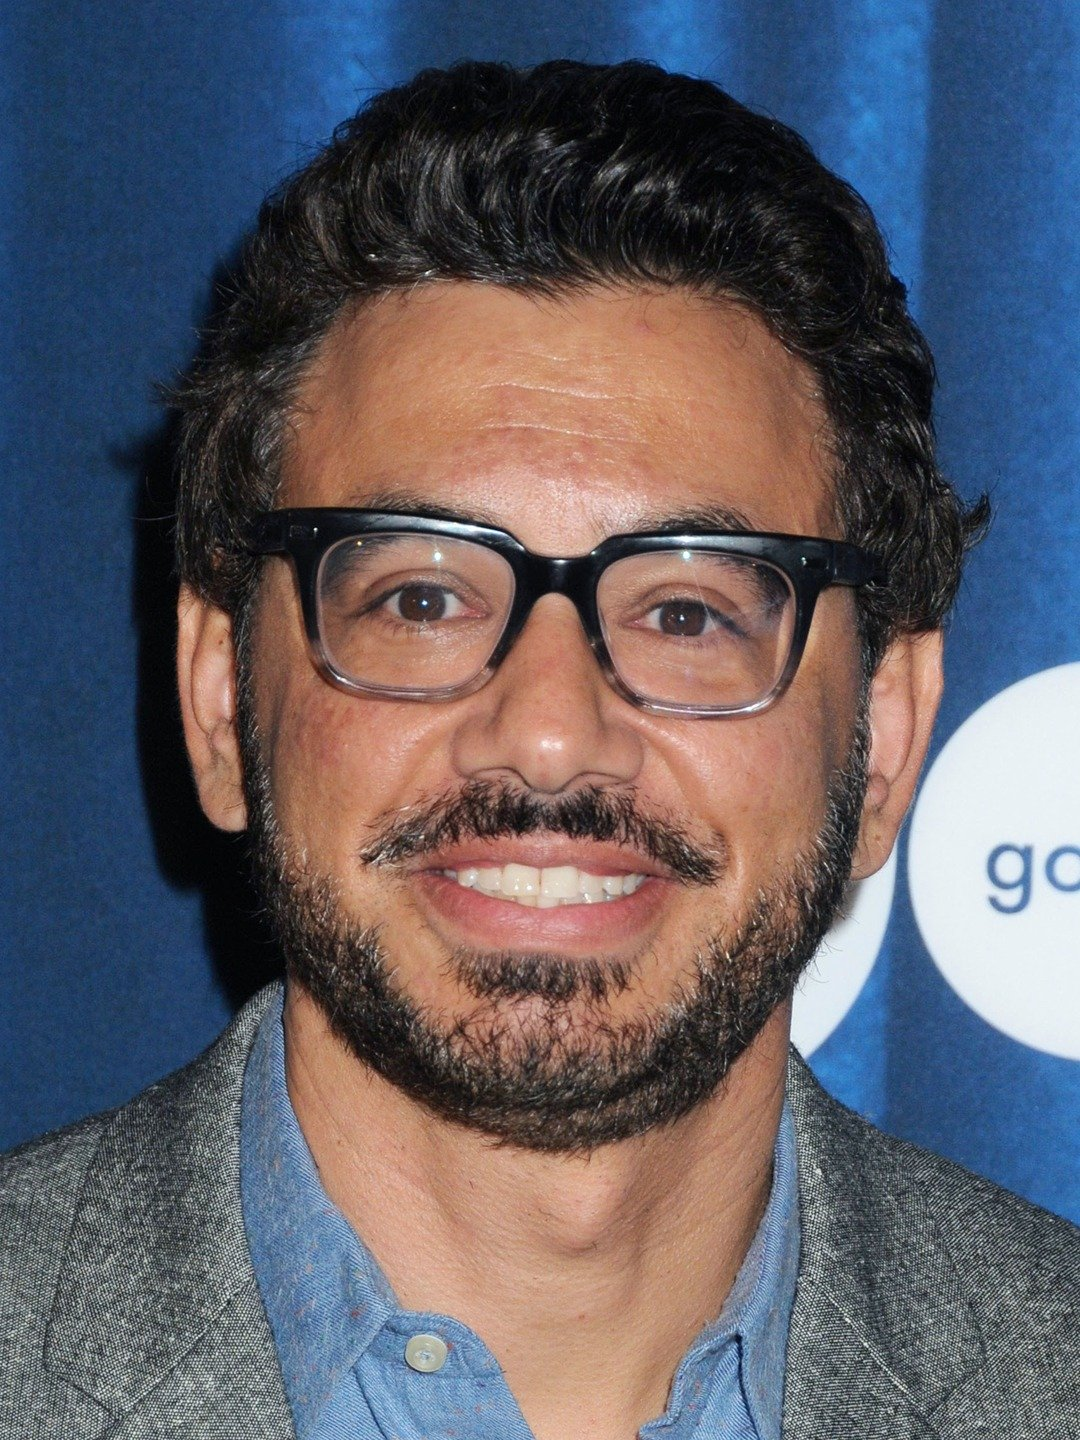 Al Madrigal American Comedian, Writer, Actor, Producer